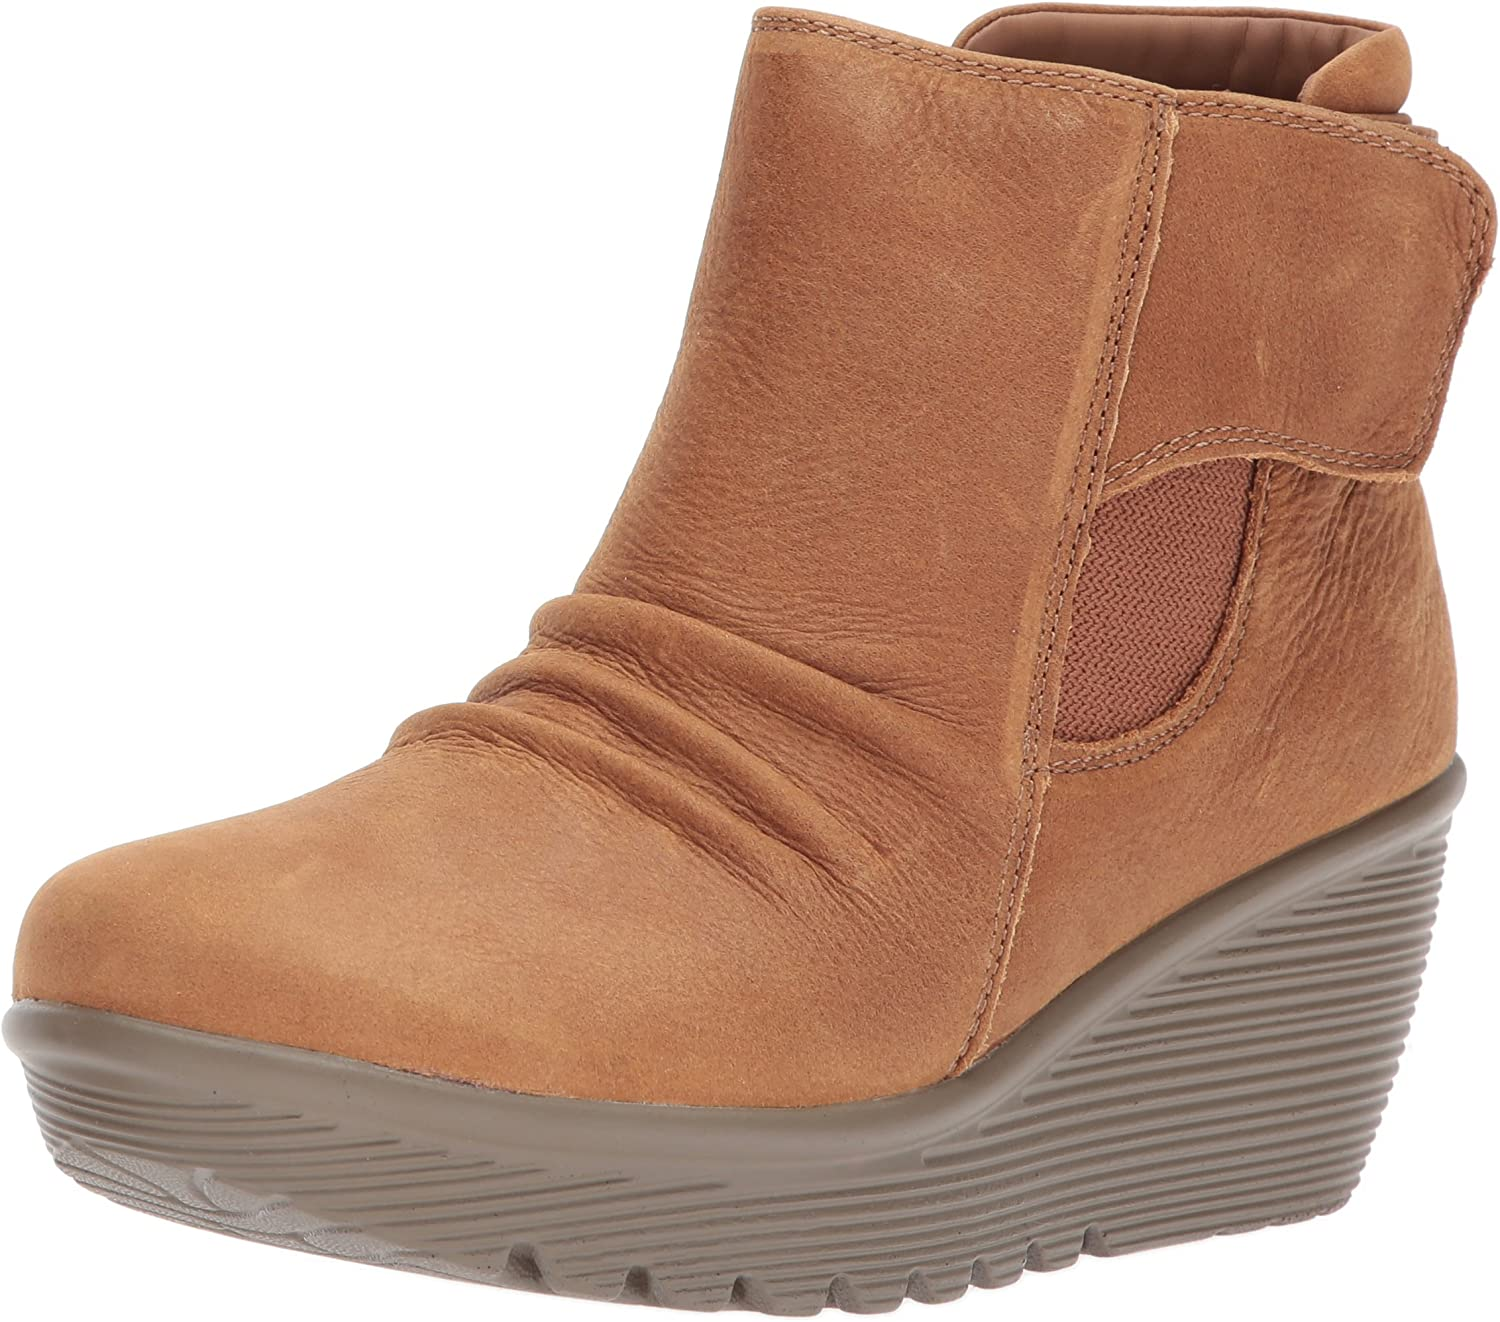 Parallel-Fastened Ankle Bootie,Tan